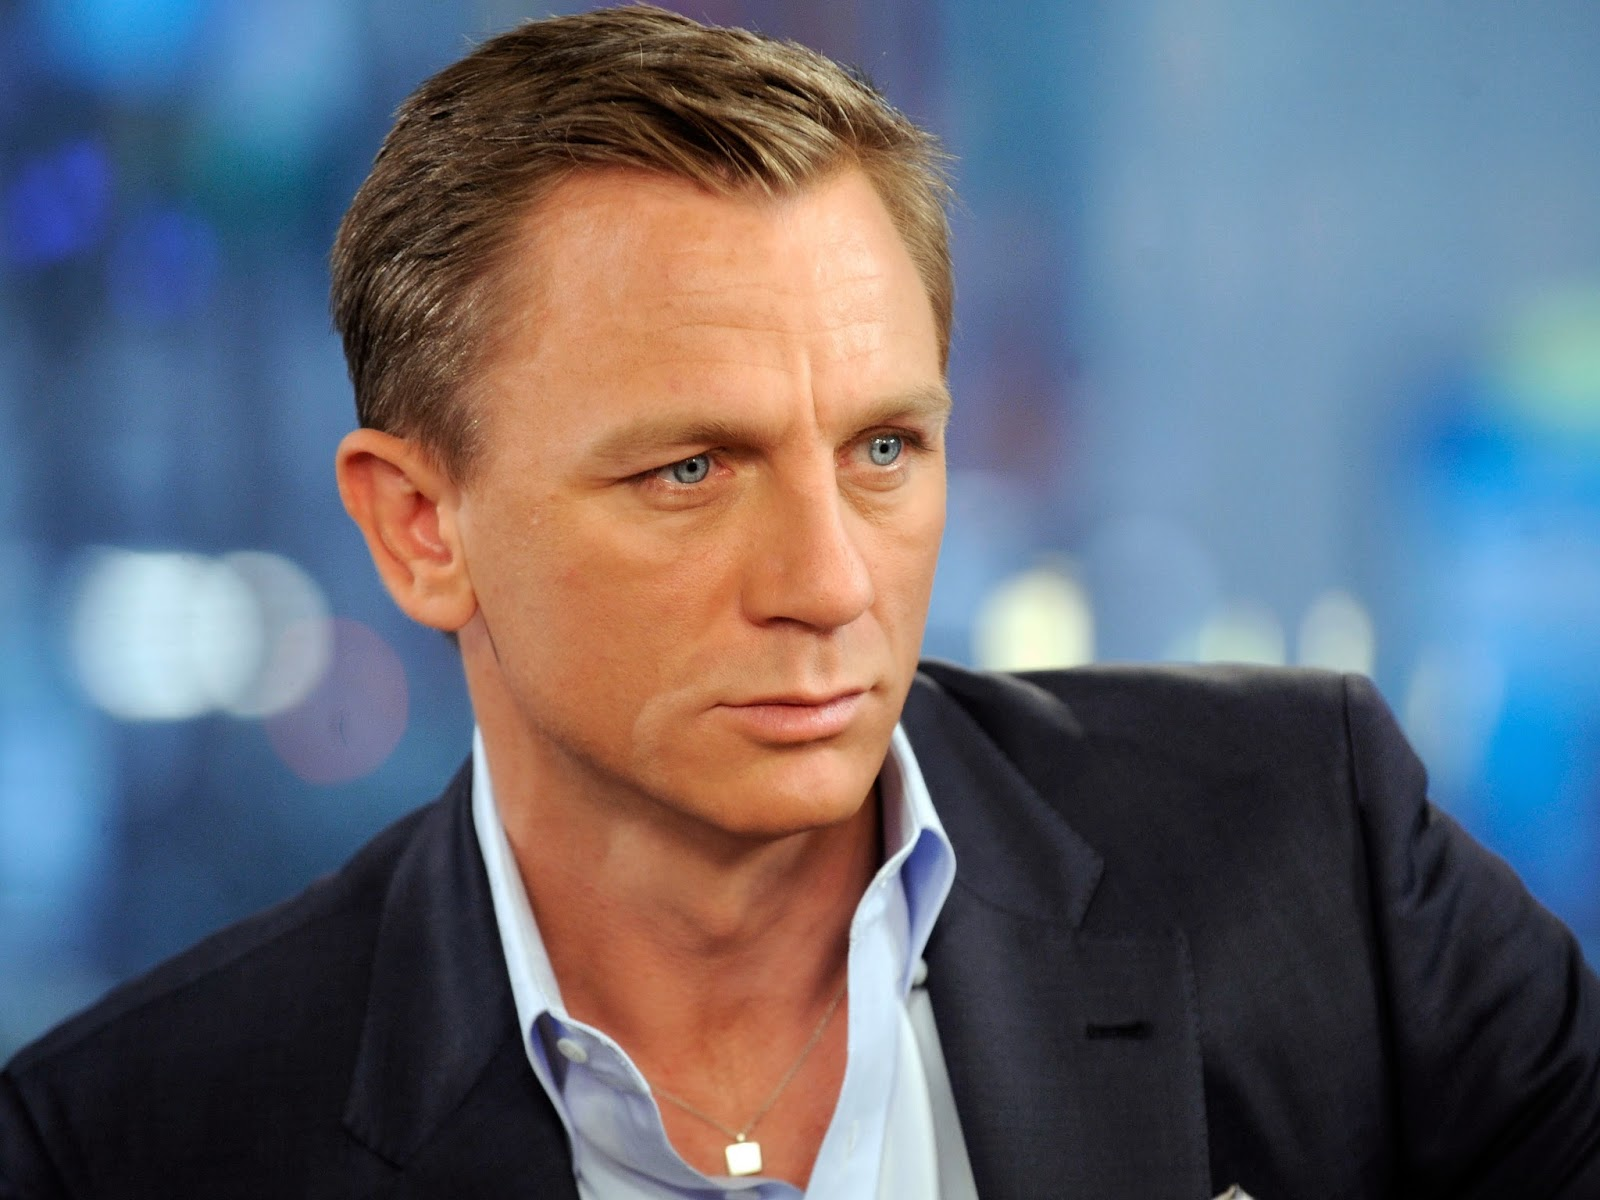 007 TRAVELERS: Daniel Craig has been injured on the set at ...